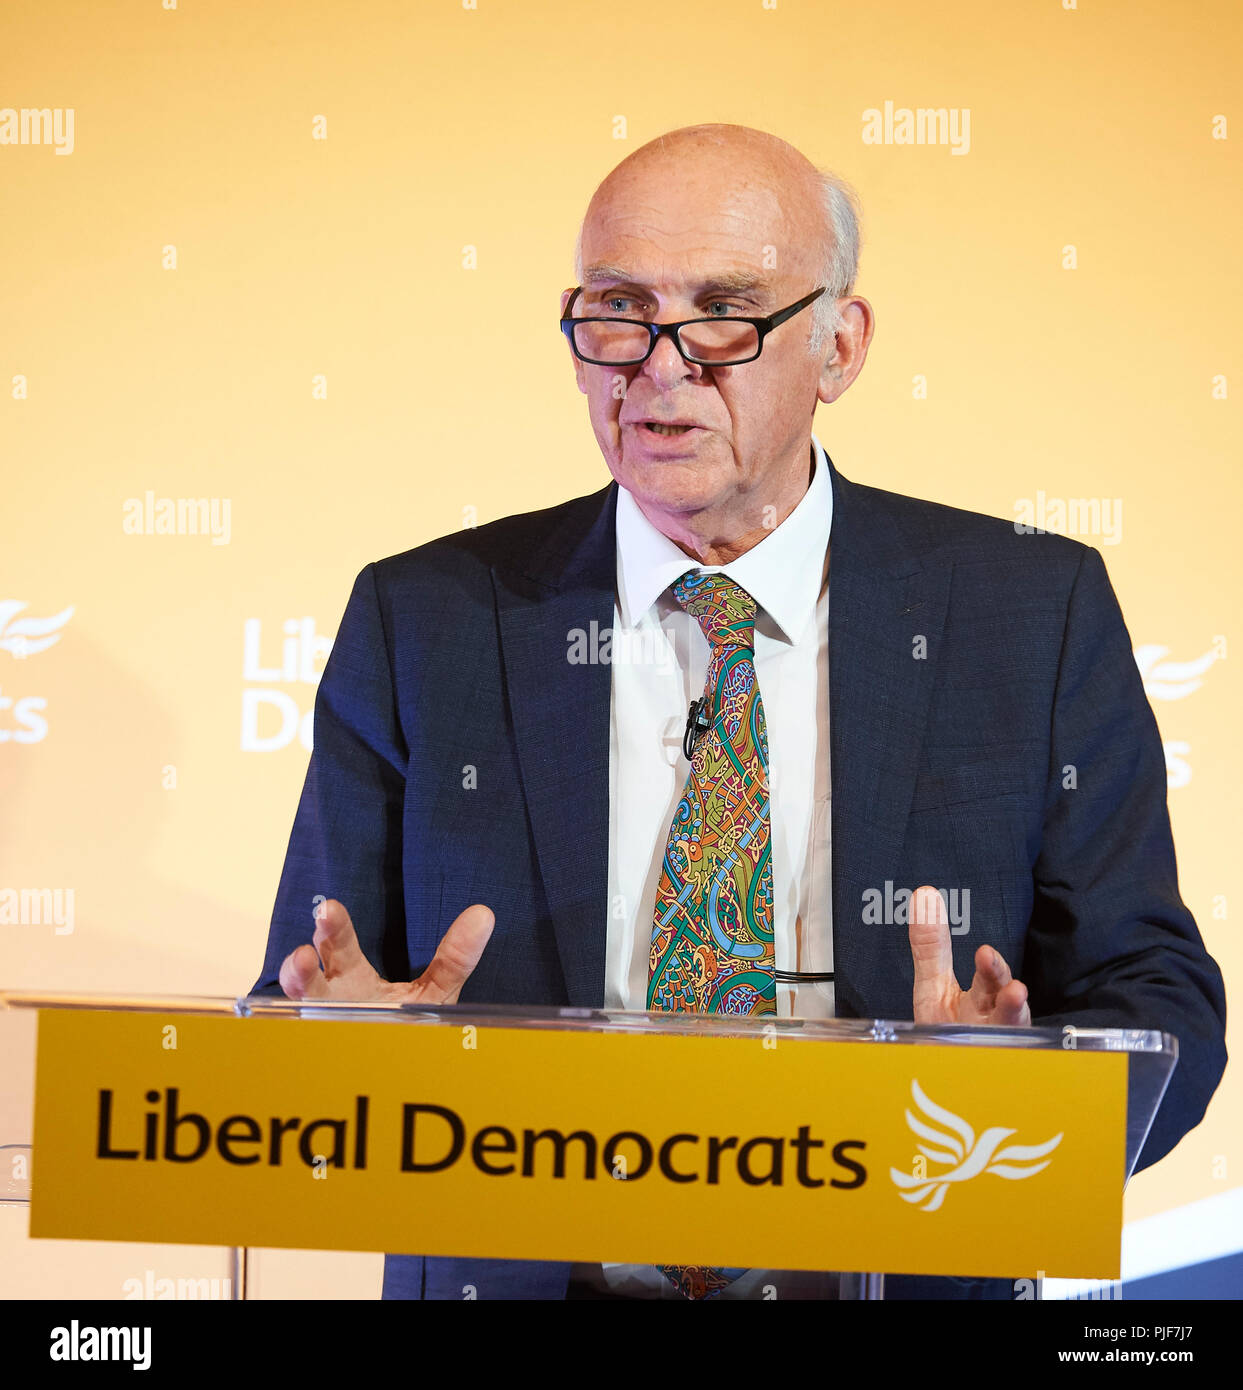 London, UK. 7th Sept 2018. Liberal Democrat leader, Sir Vince Cable, launching the reform proposals for the Liberal Democrat Party in the David Lloyd George Room at the National Liberal Club, London. 7th September, 2018. Credit: Thomas Bowles/Alamy Live News Stock Photo